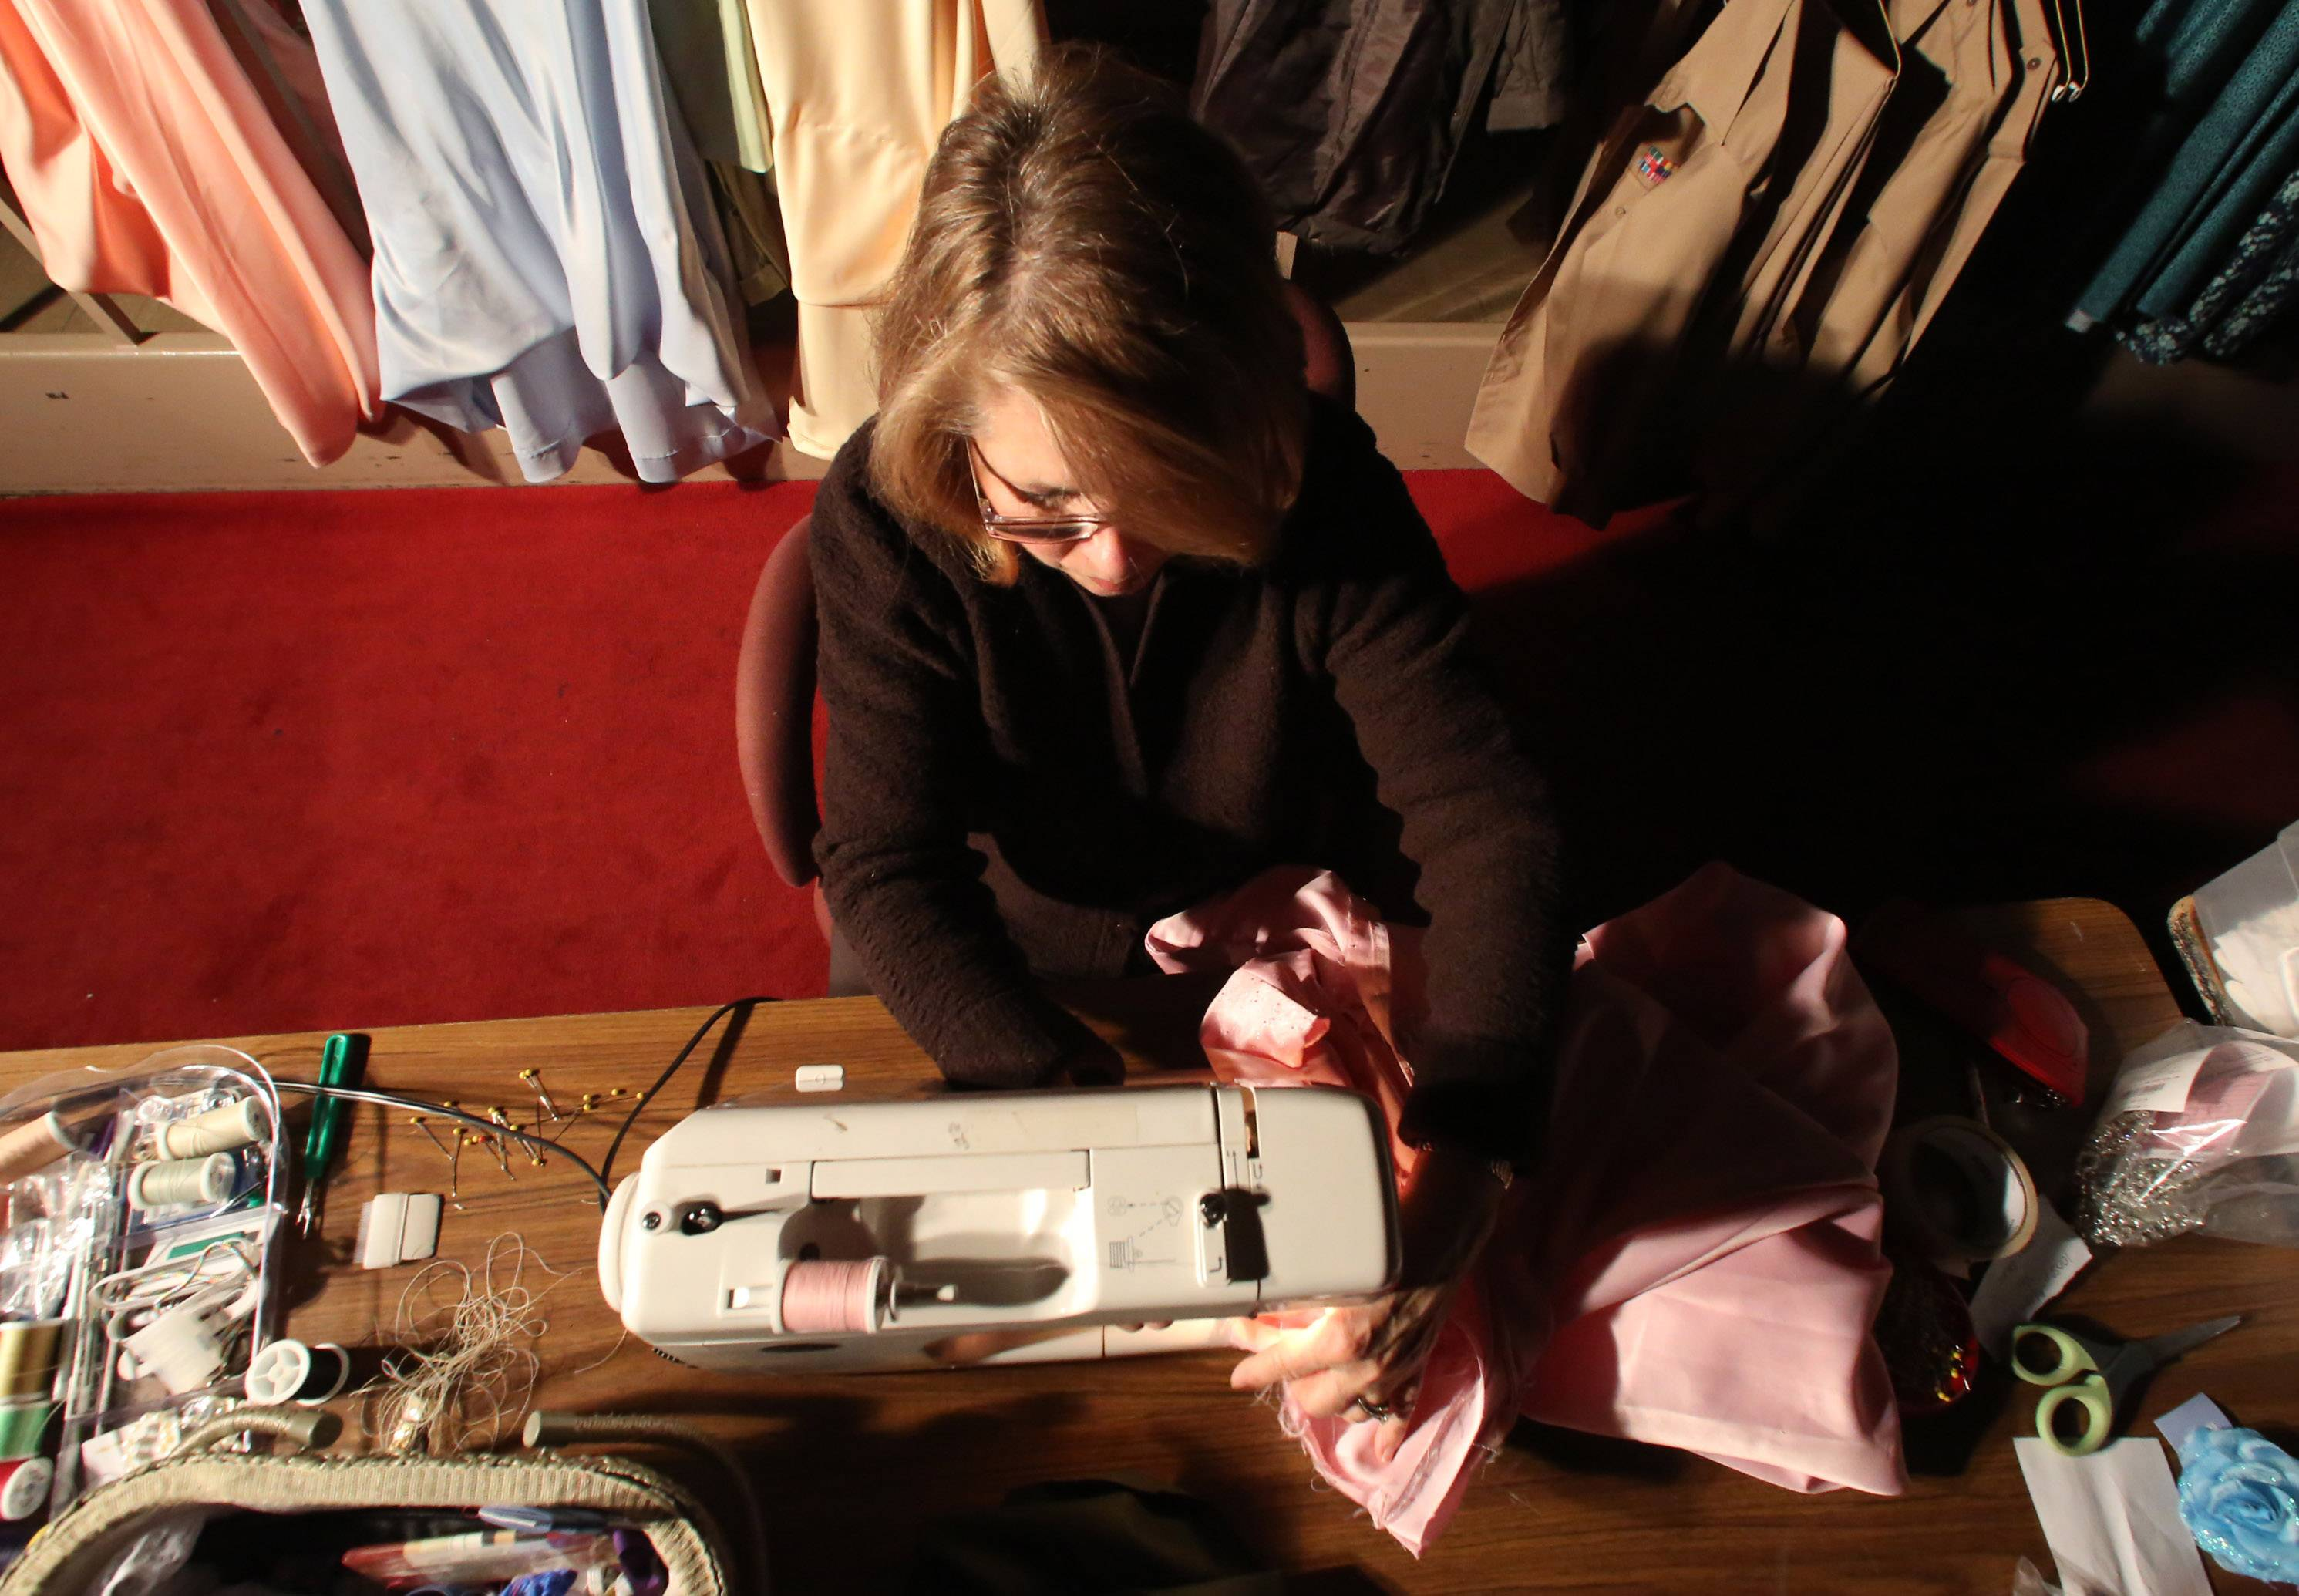 Lillian Jarrett of Gurnee sews costumes backstage during a rehearsal for Carmel Catholic High School's Street Scenes.